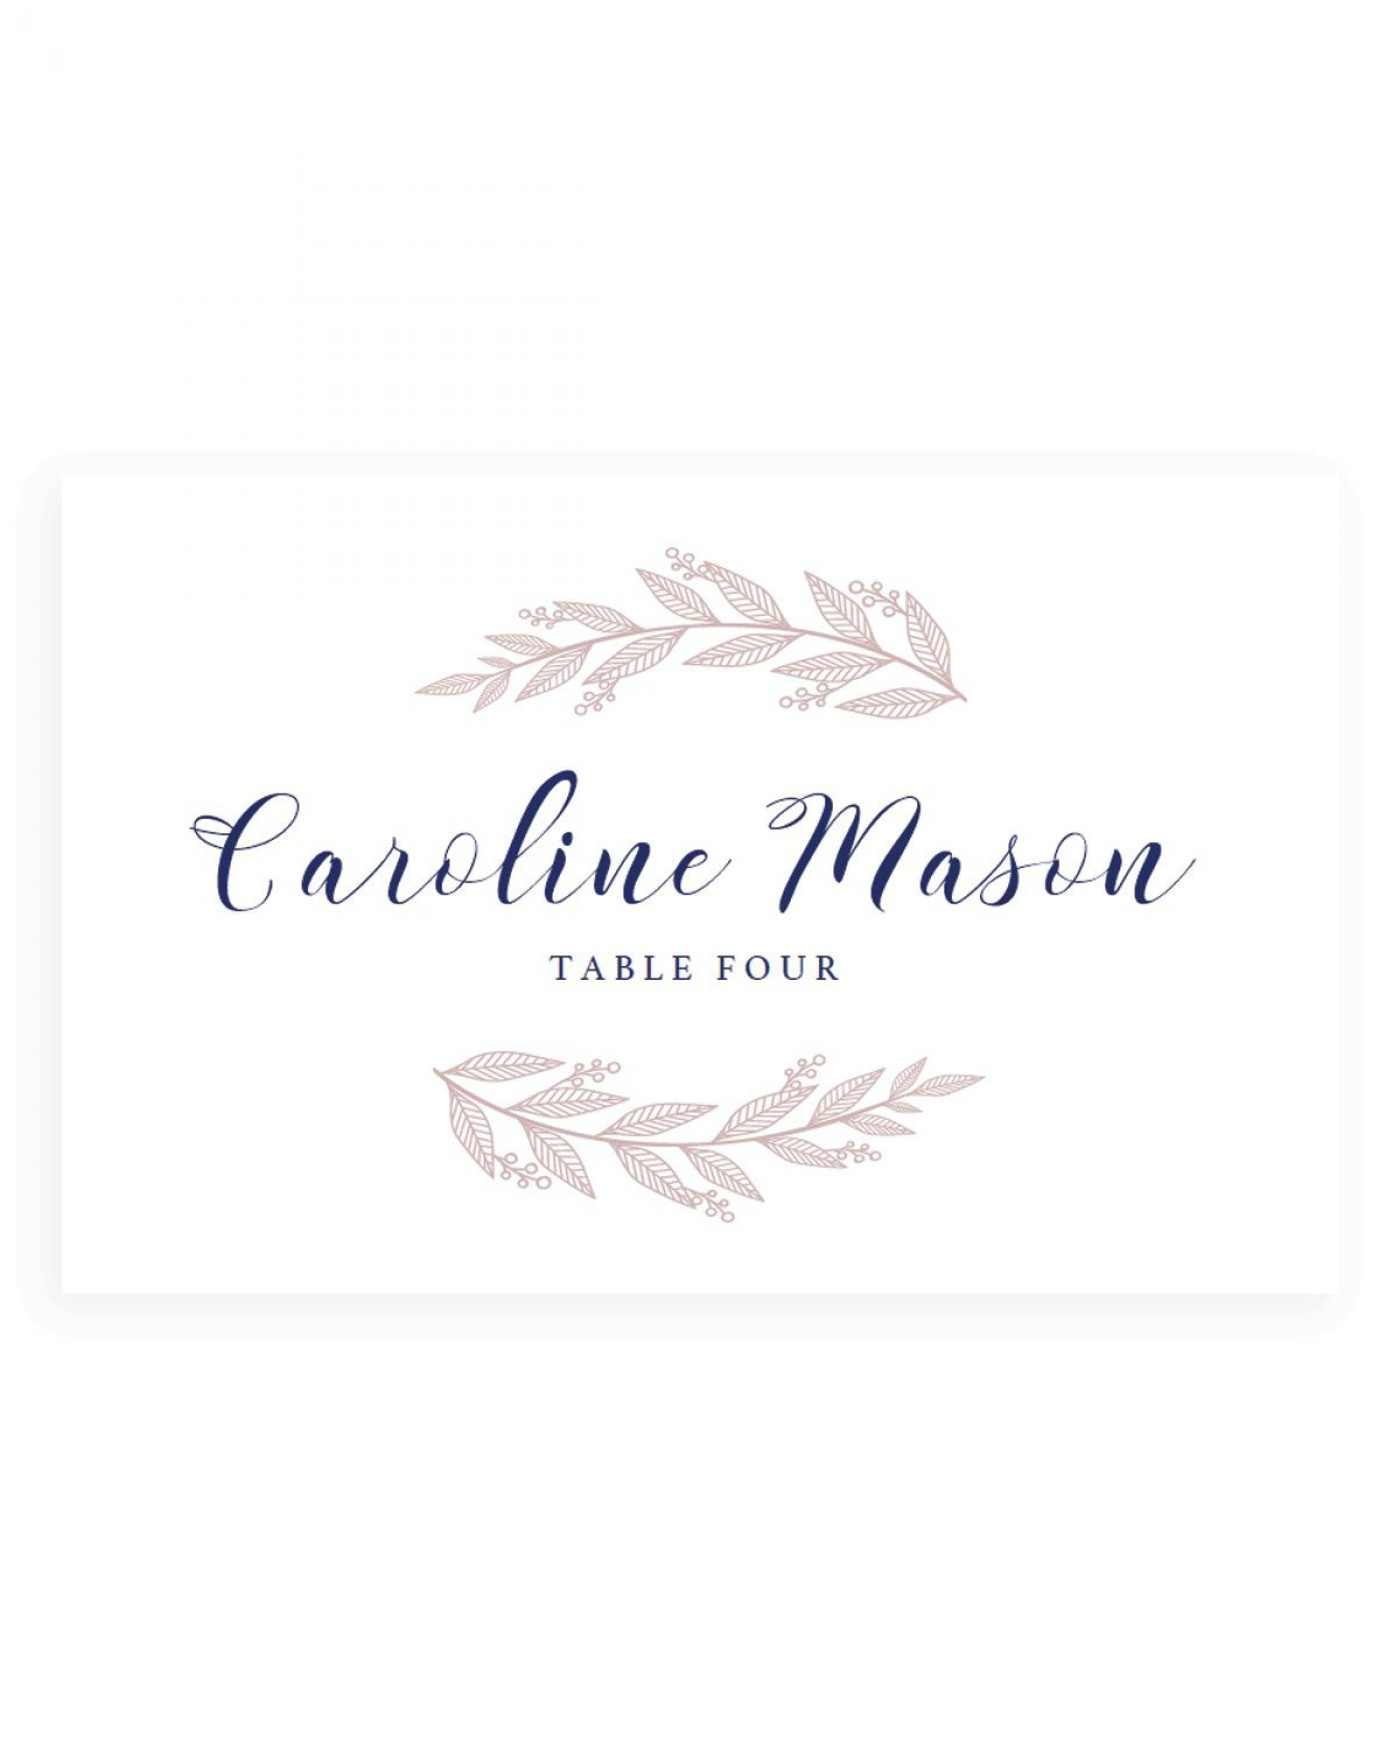 005 Fantastic Wedding Name Card Template Example  Free Download Design Sticker Format1400